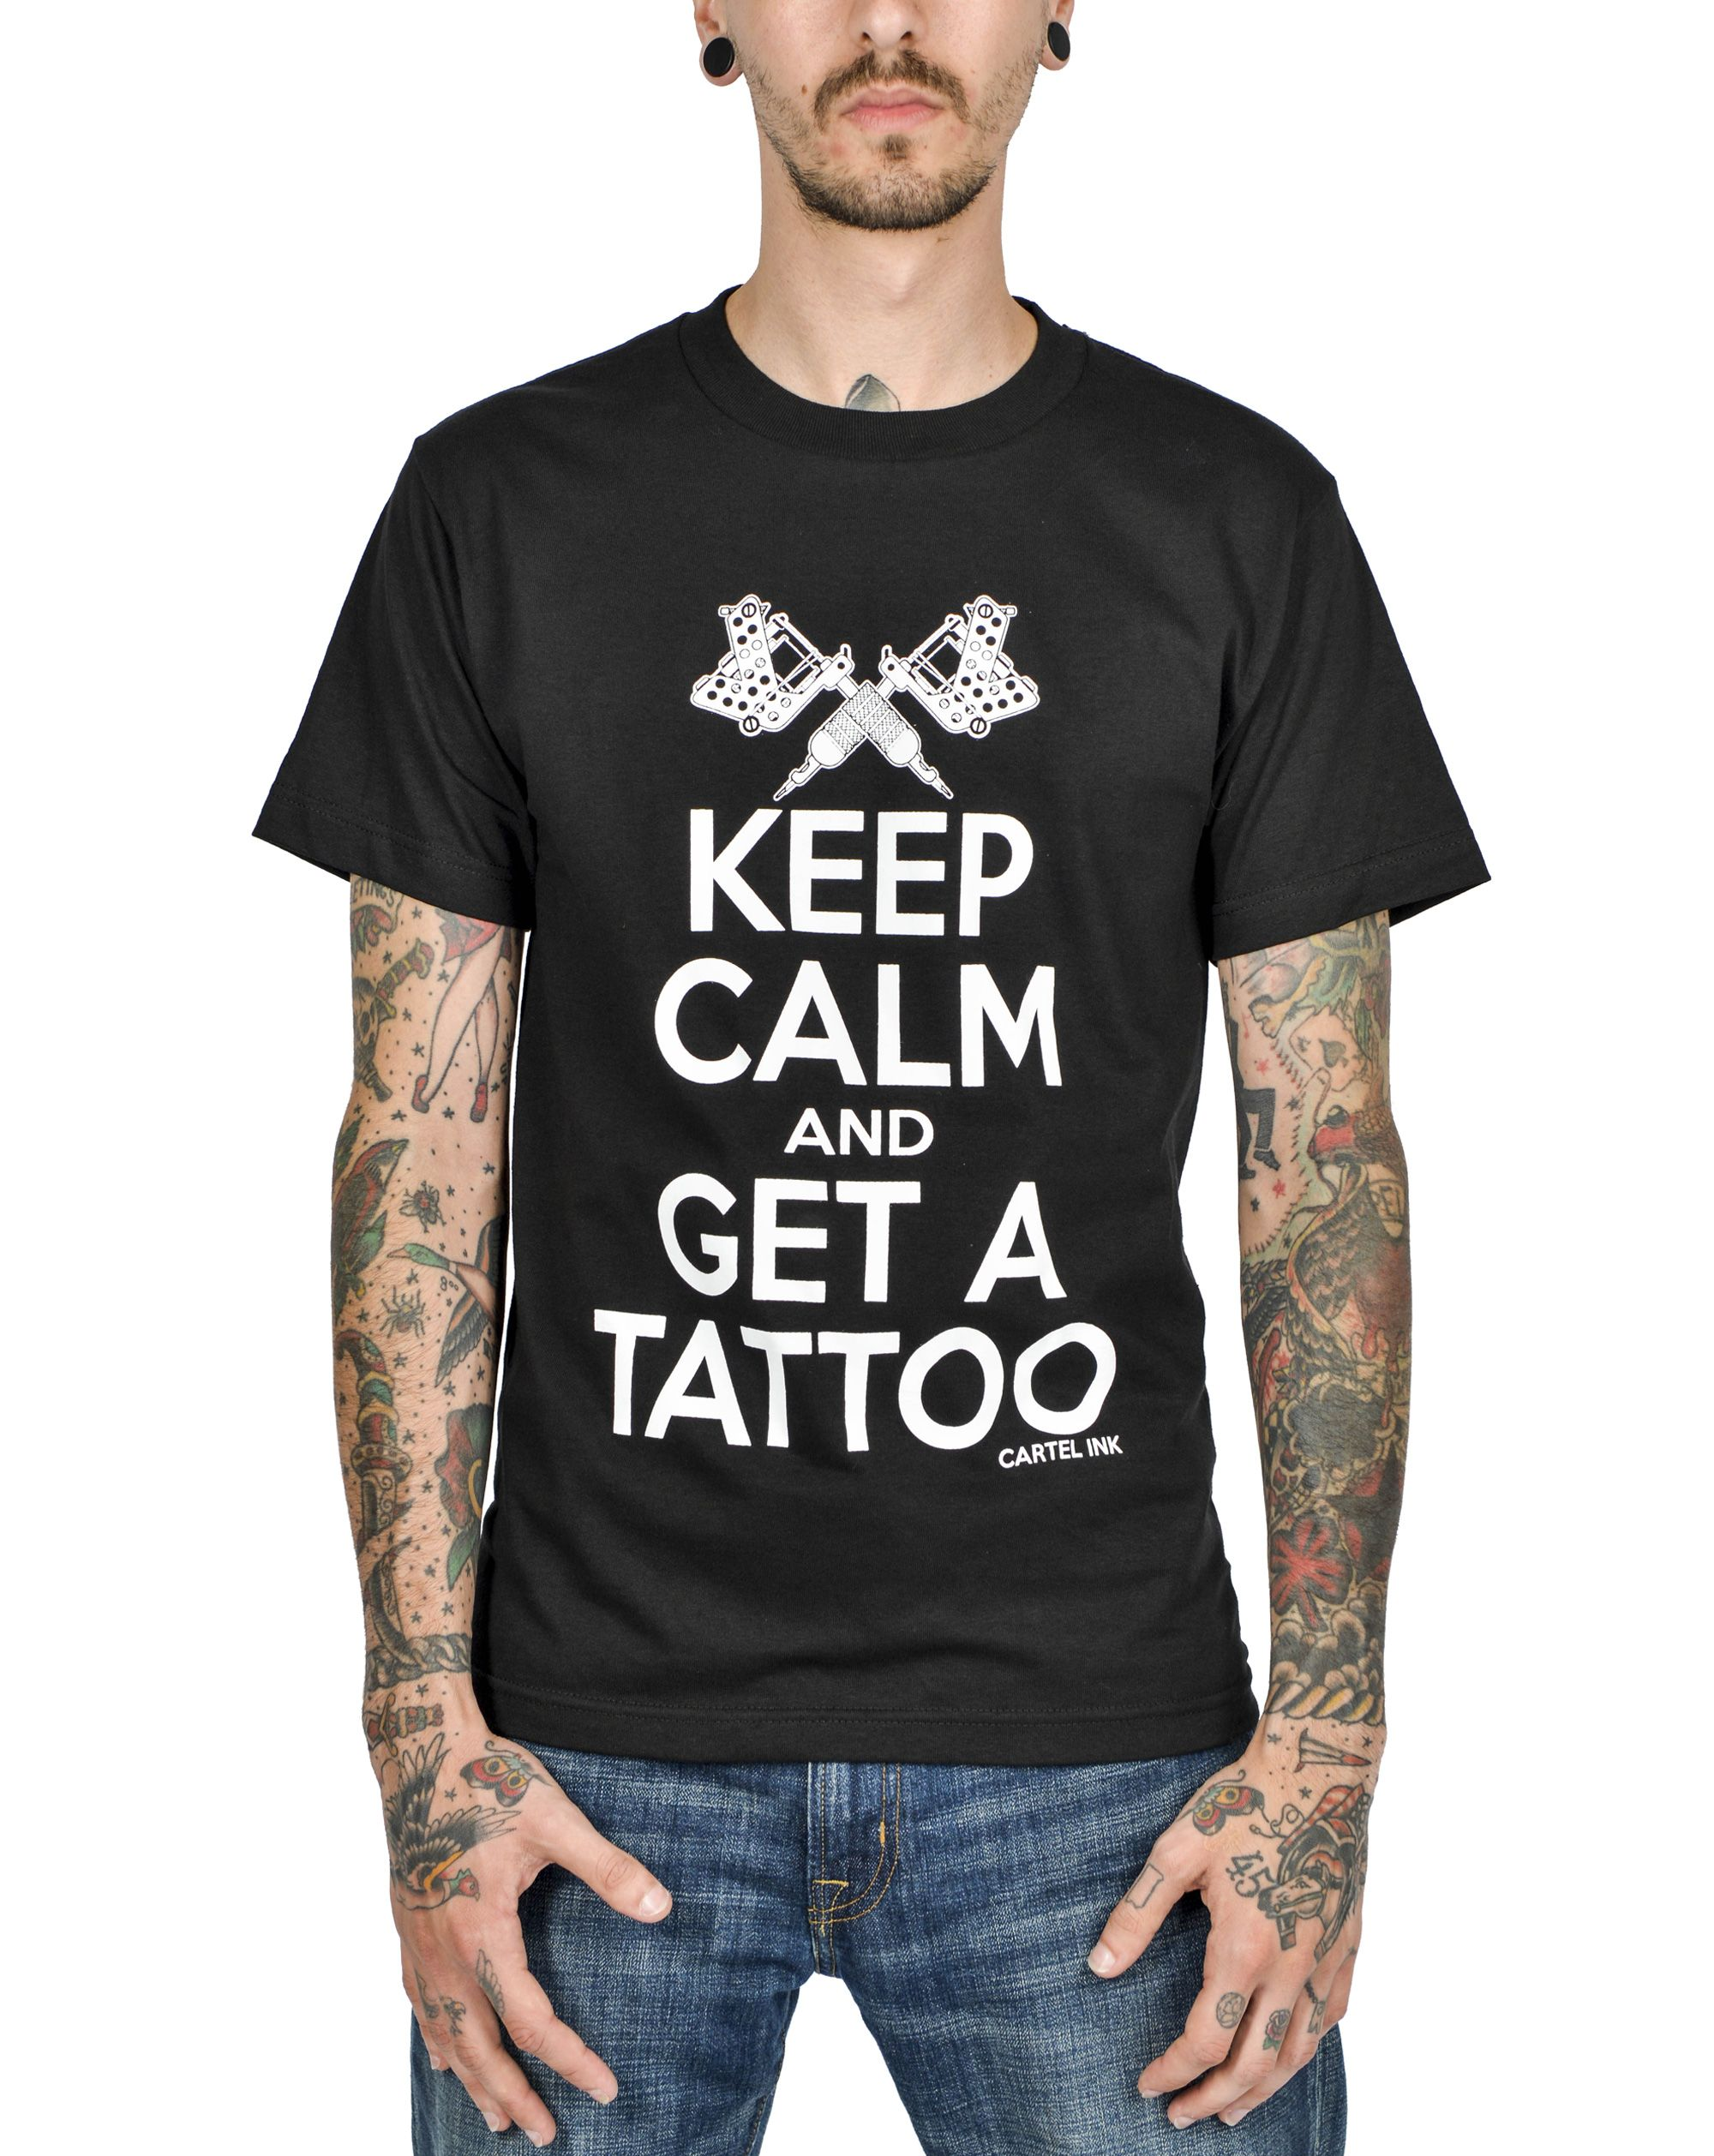 Cool tattoos for white guys keep calm and get a tattoo mens tee  hot guys and hot tattoos